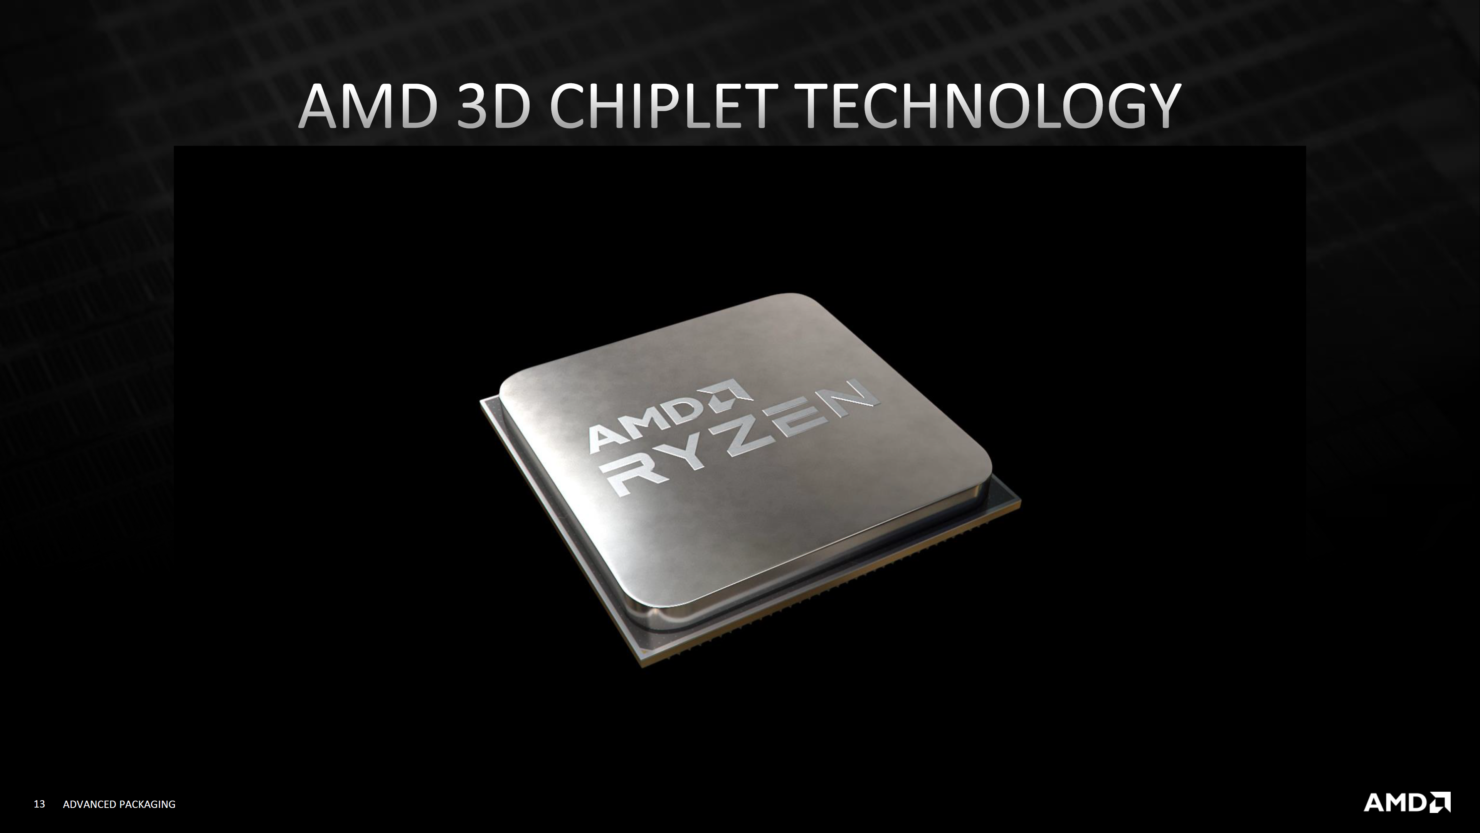 amd-advanced-3d-chiplet-packaging-3d-stacking-technologies-3d-v-cache-_12